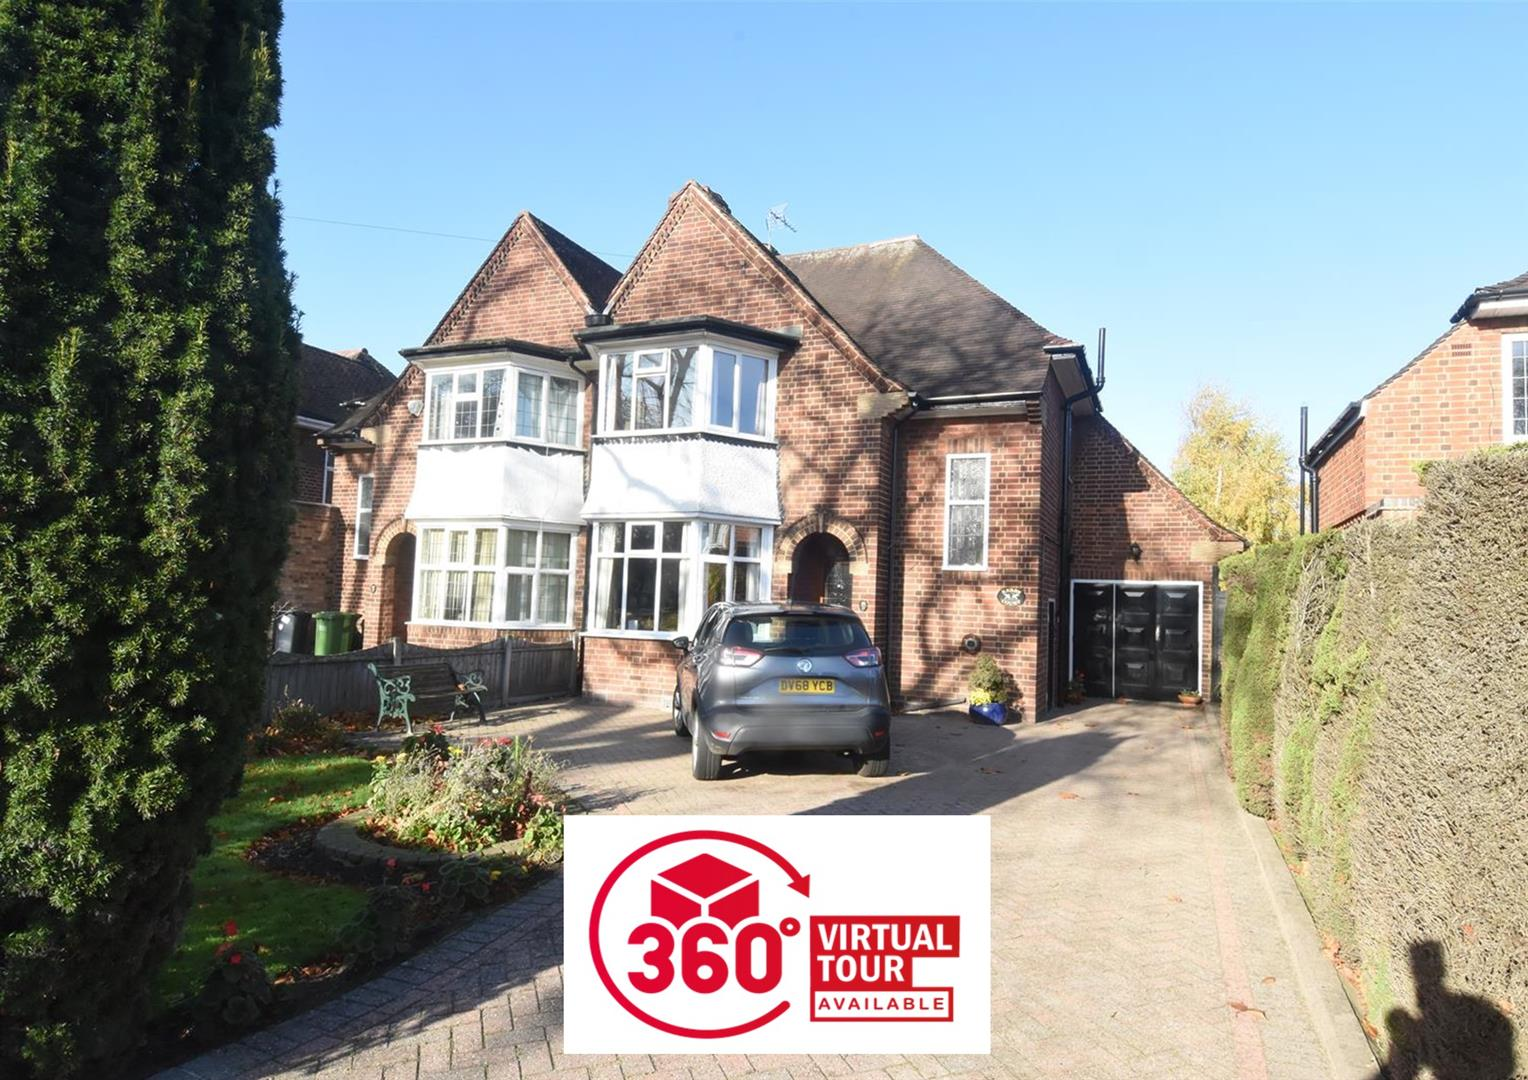 3 bed house for sale in 25 Water Orton Road, Castle Bromwich, Birmingham, B36